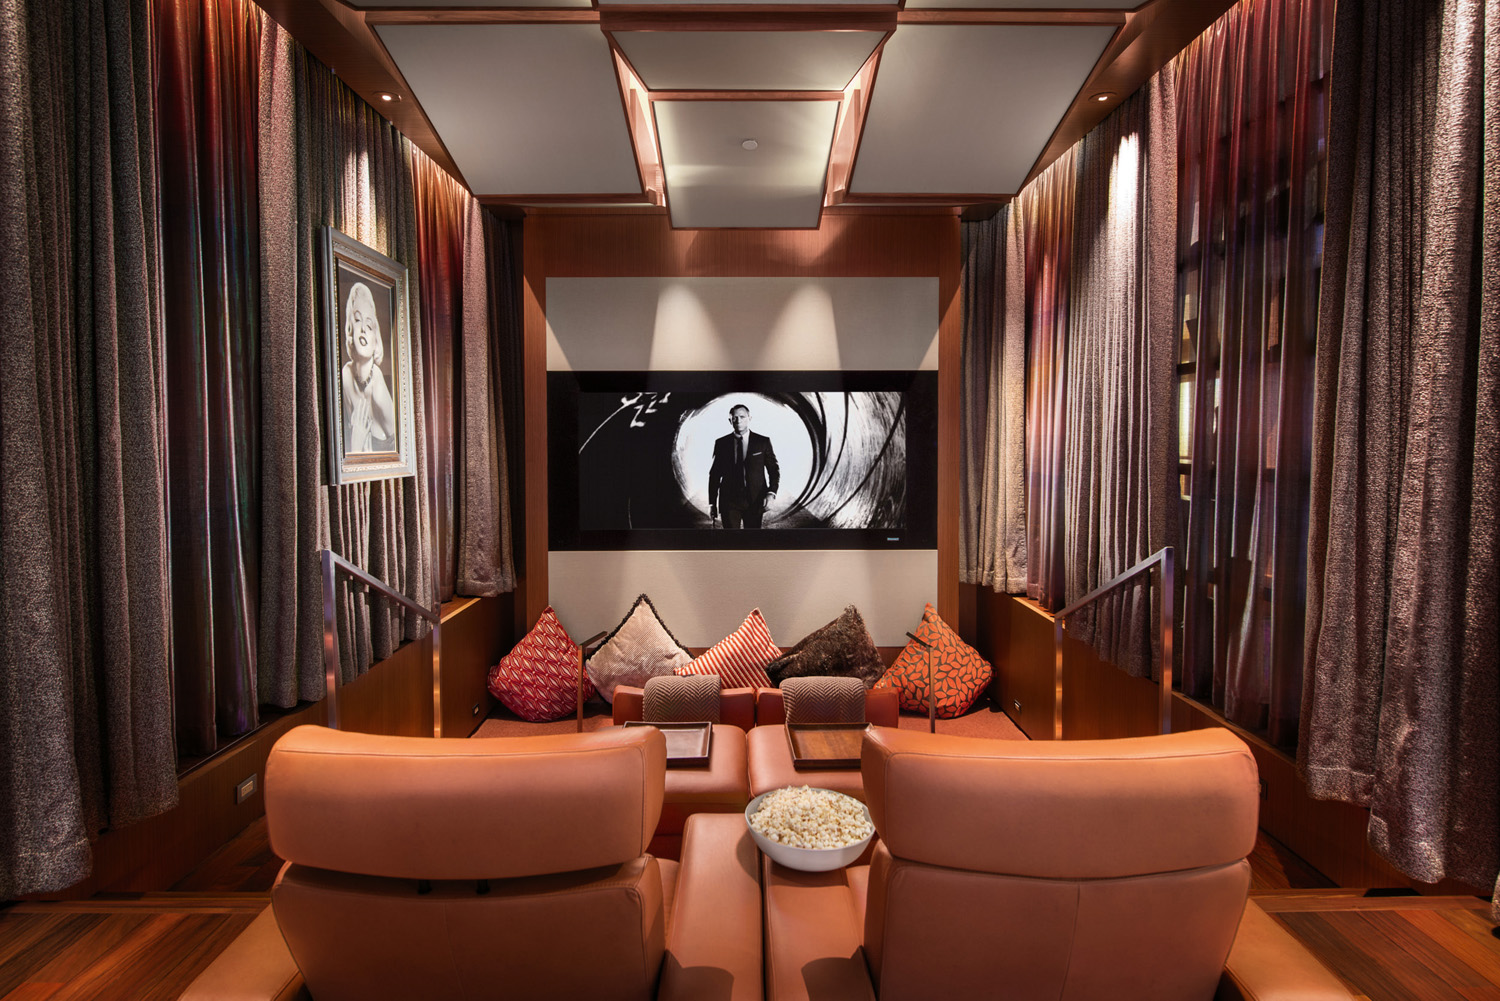 No need to venture out for a movie, there's a private cinema in the home